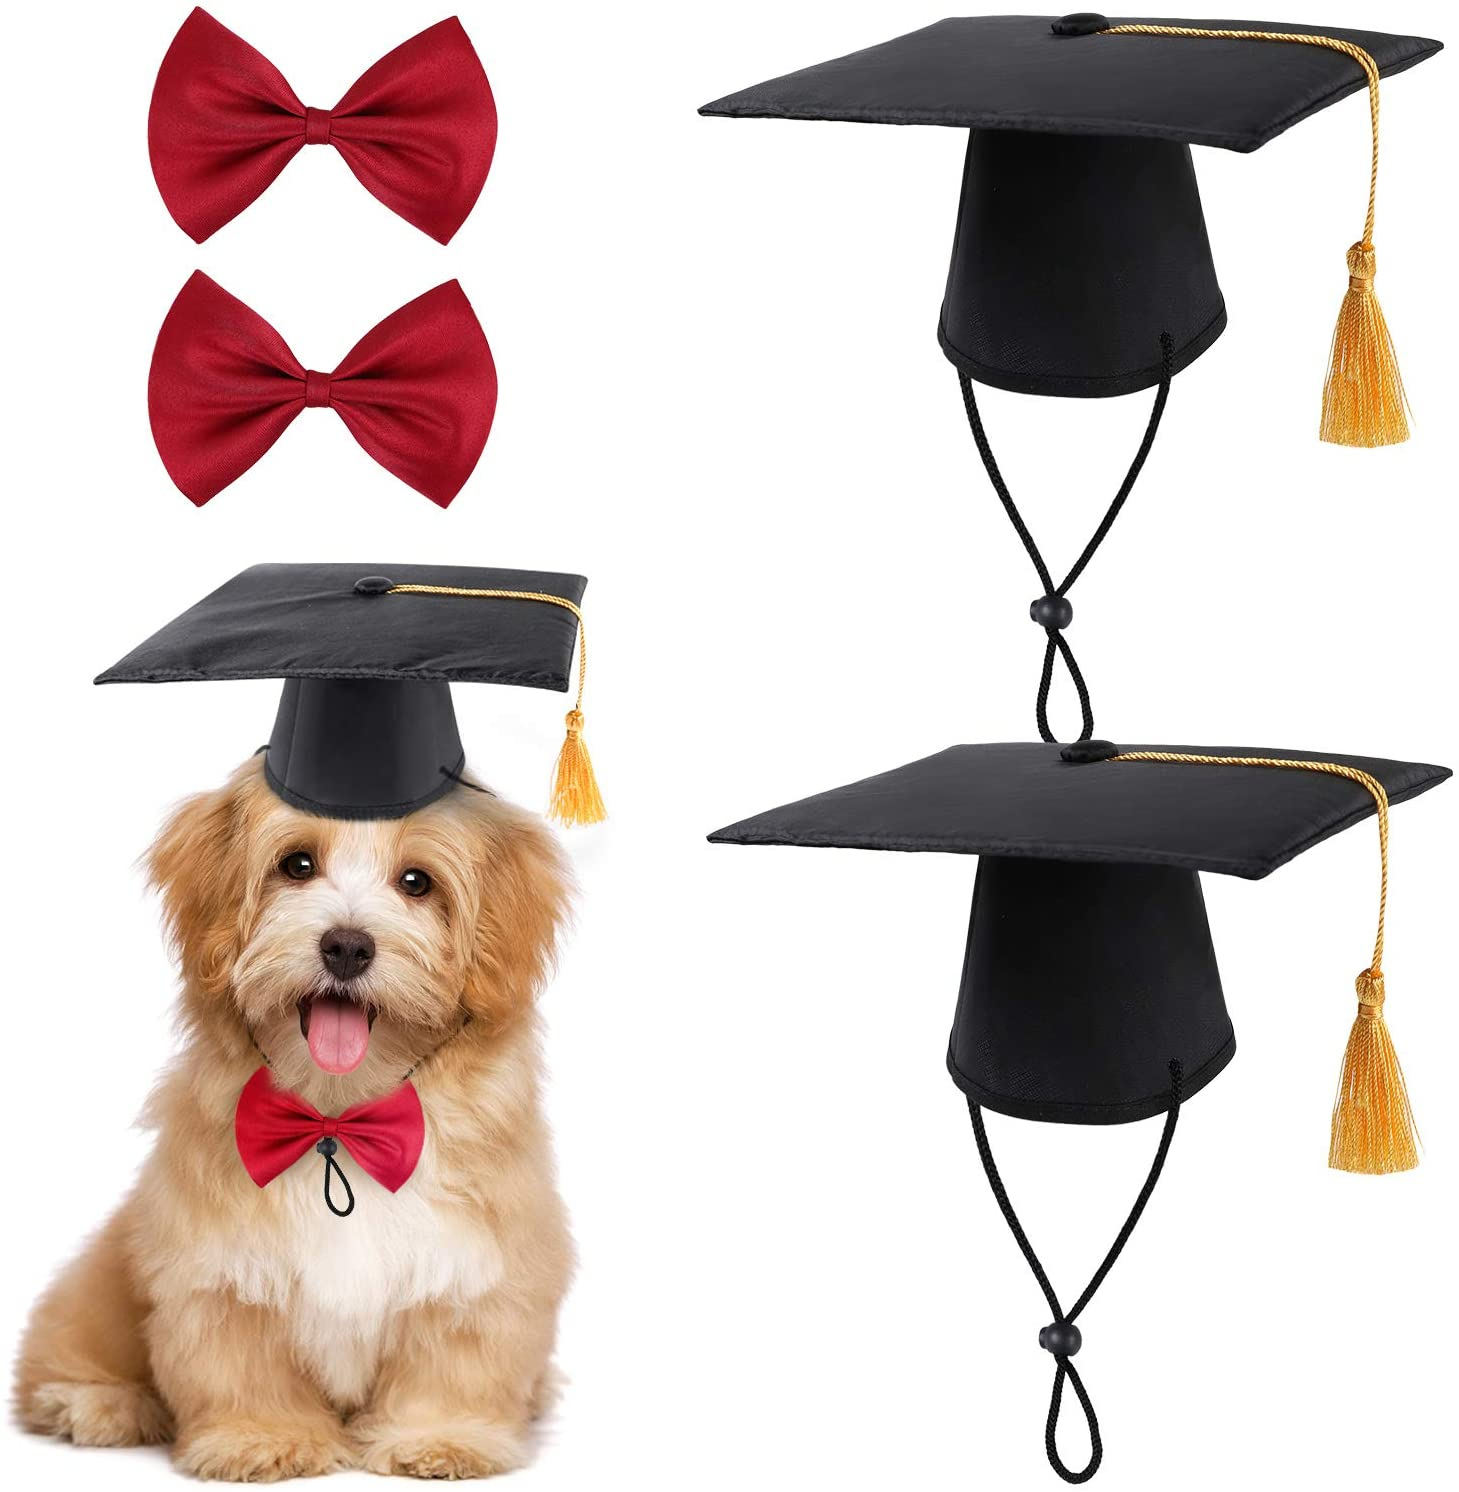 BENBO 2 Pcs Pet Graduation Caps with 2 Pcs Bow Tie Necktie Collar, Small Dog Graduation Hats with Yellow Tassel Pet Grad Costume for Dogs Cats Holiday Costume Party Favor